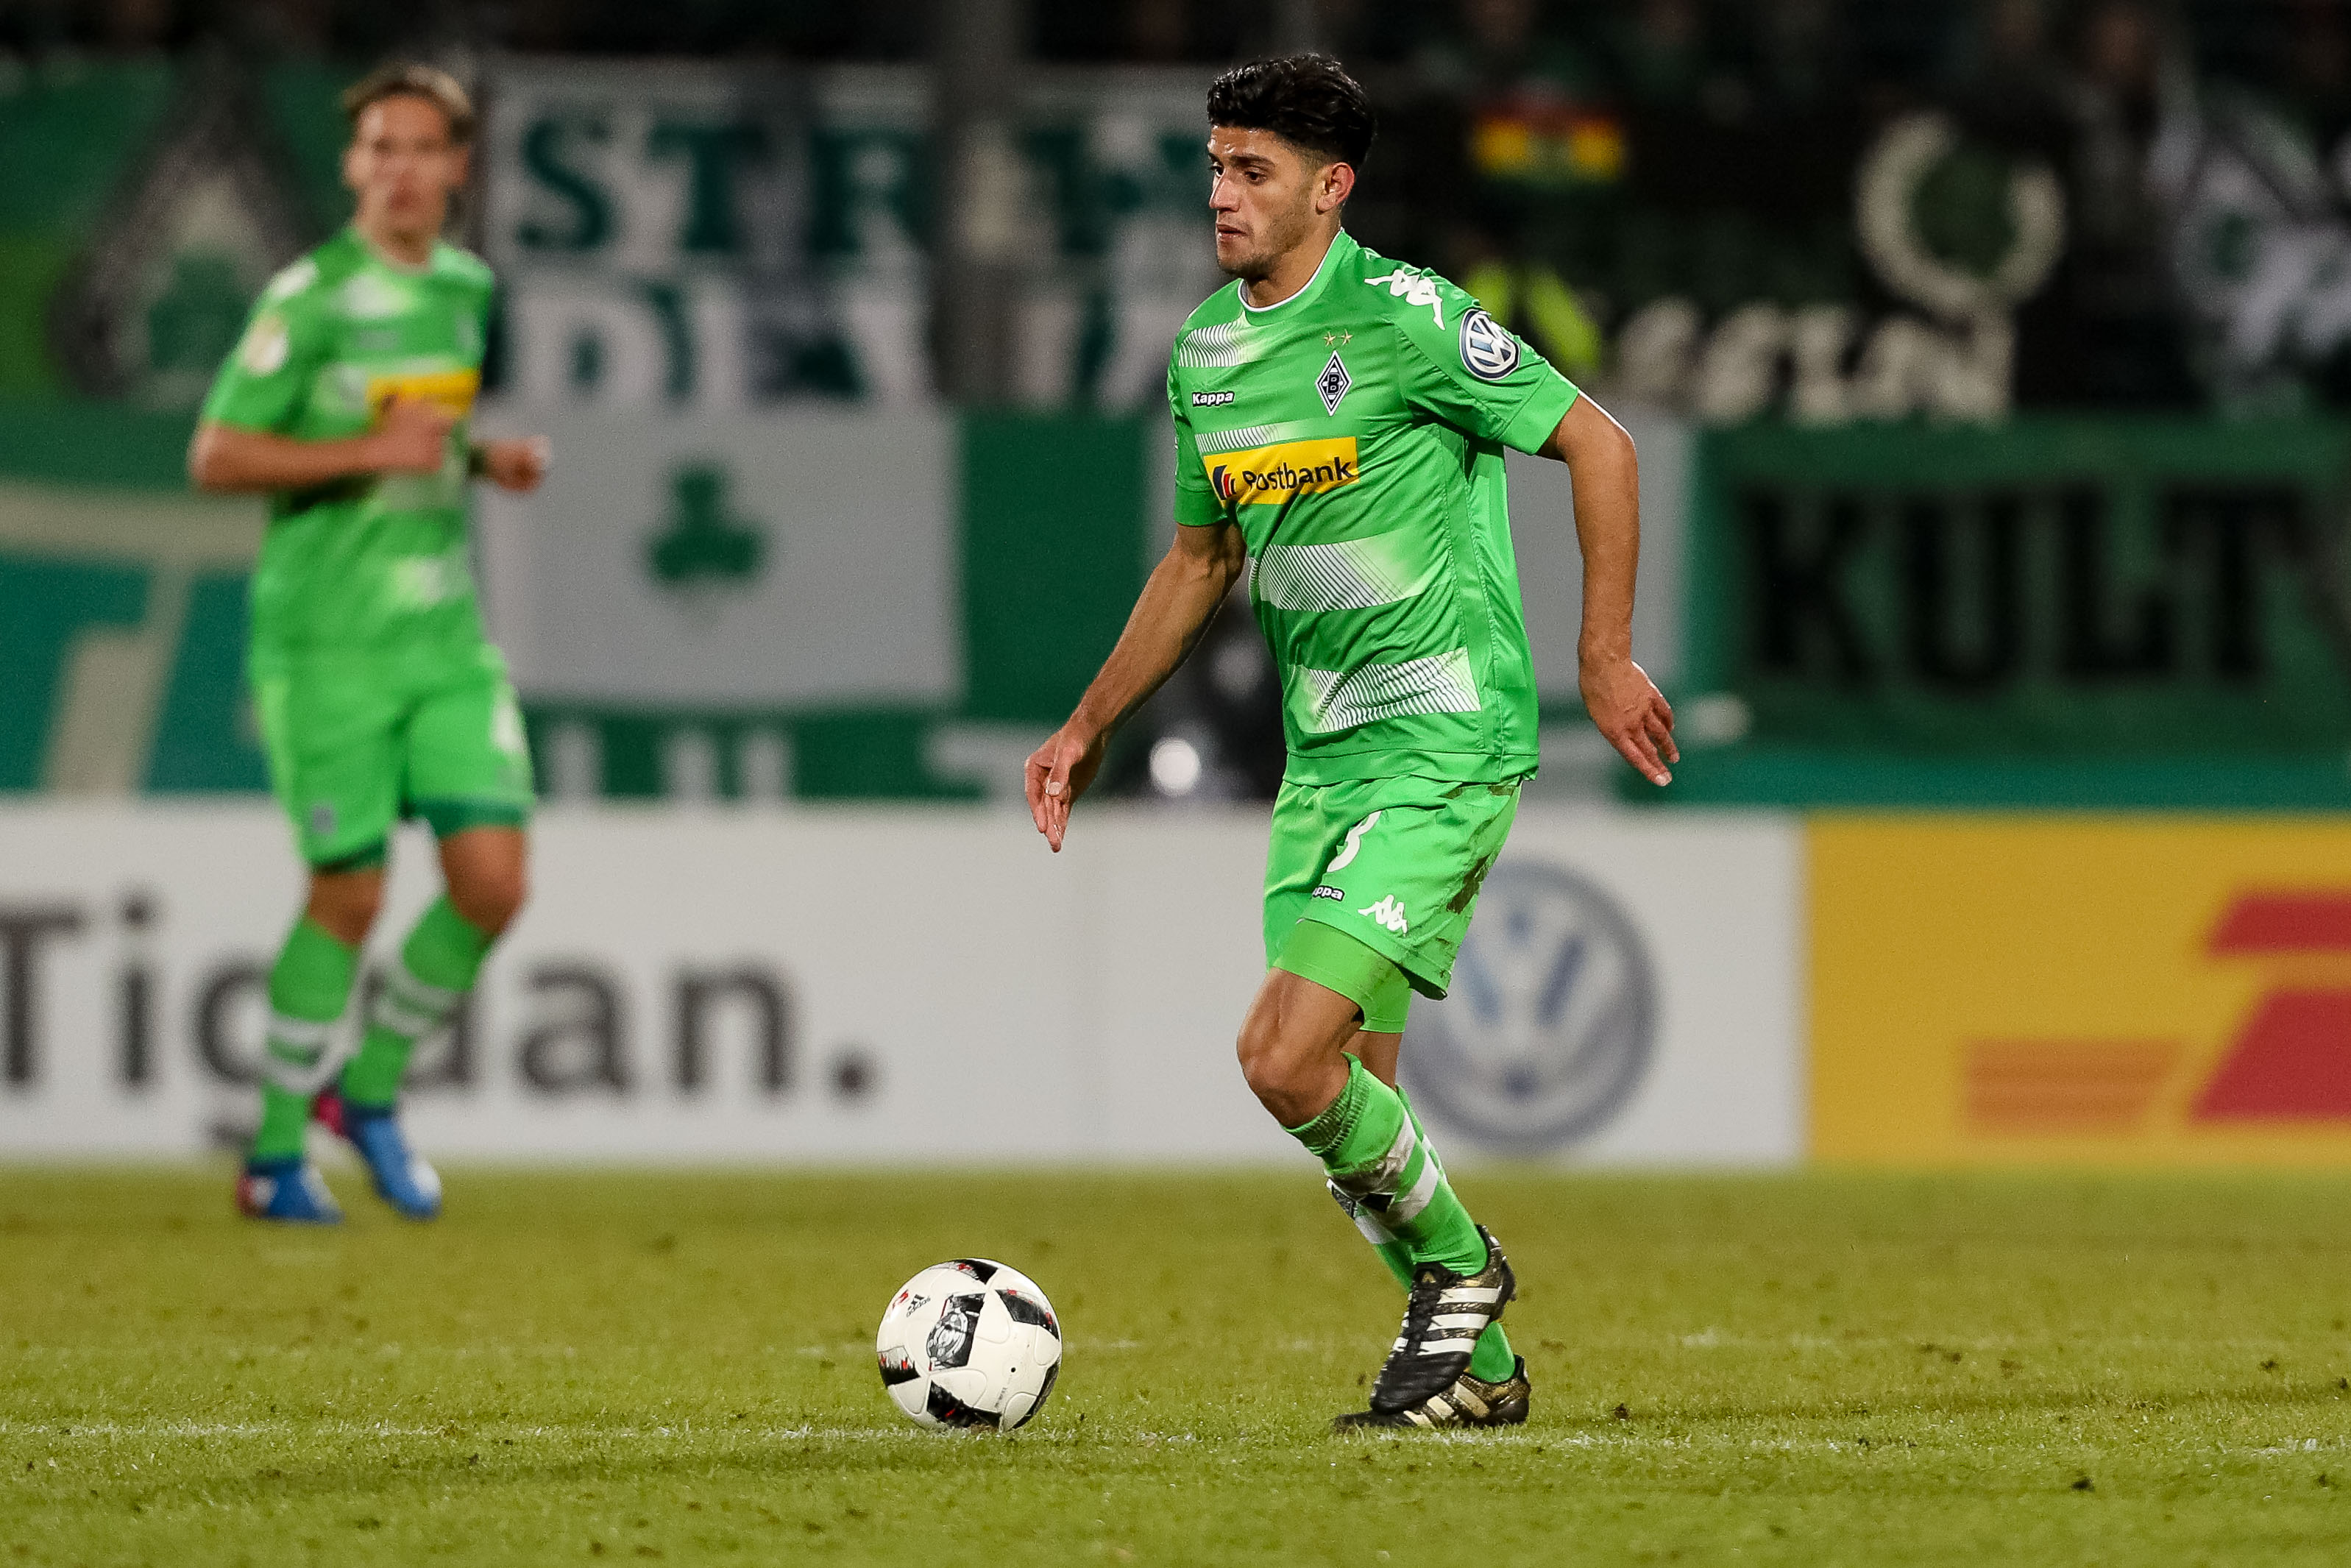 641329242-spvgg-greuther-fuerth-v-borussia-moenchengladbach-dfb-cup-round-of-16